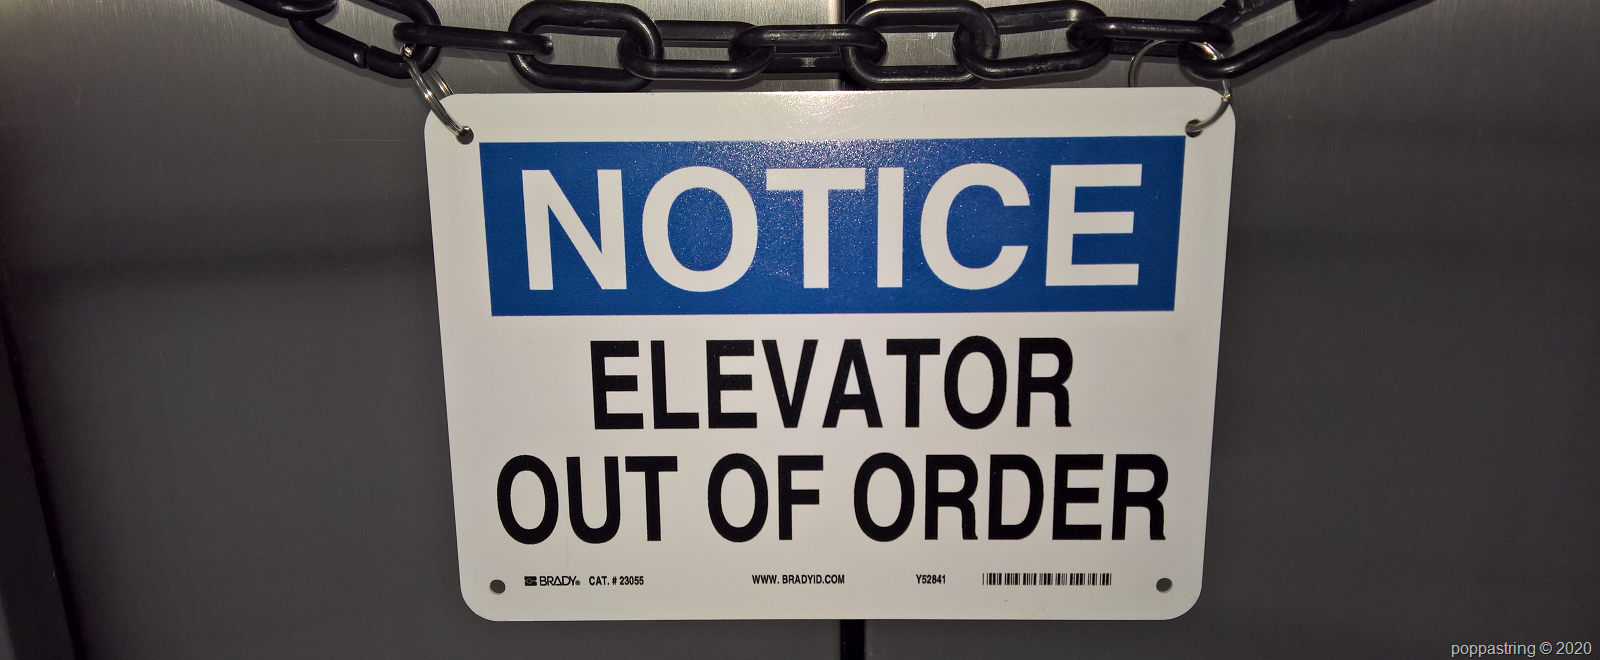 Notive elevator out of order